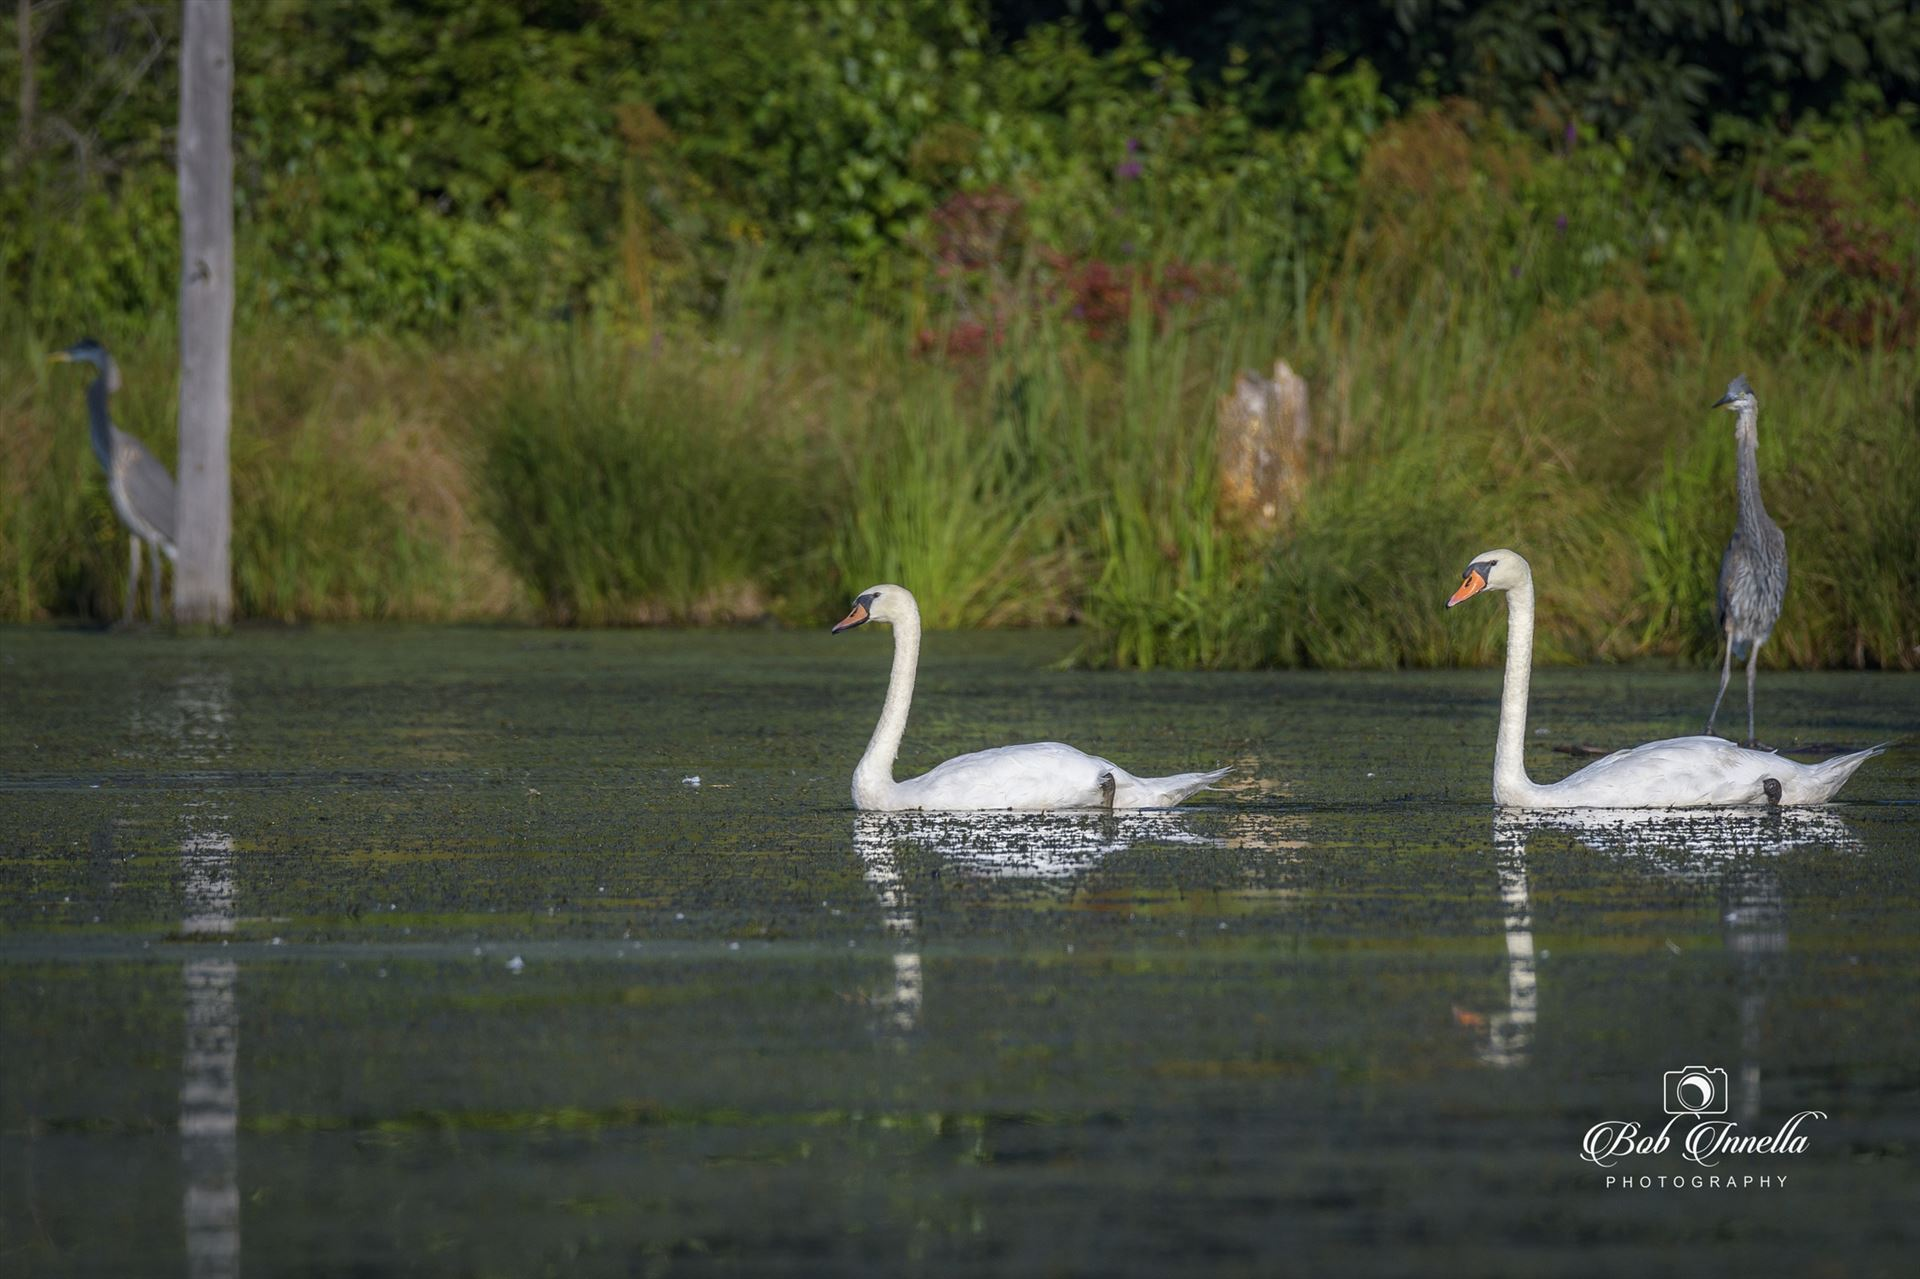 Wild White Swans 2 White Swans with Two Great Blue Herons, Layton, NJ, National Park Service Land 2018 by Buckmaster